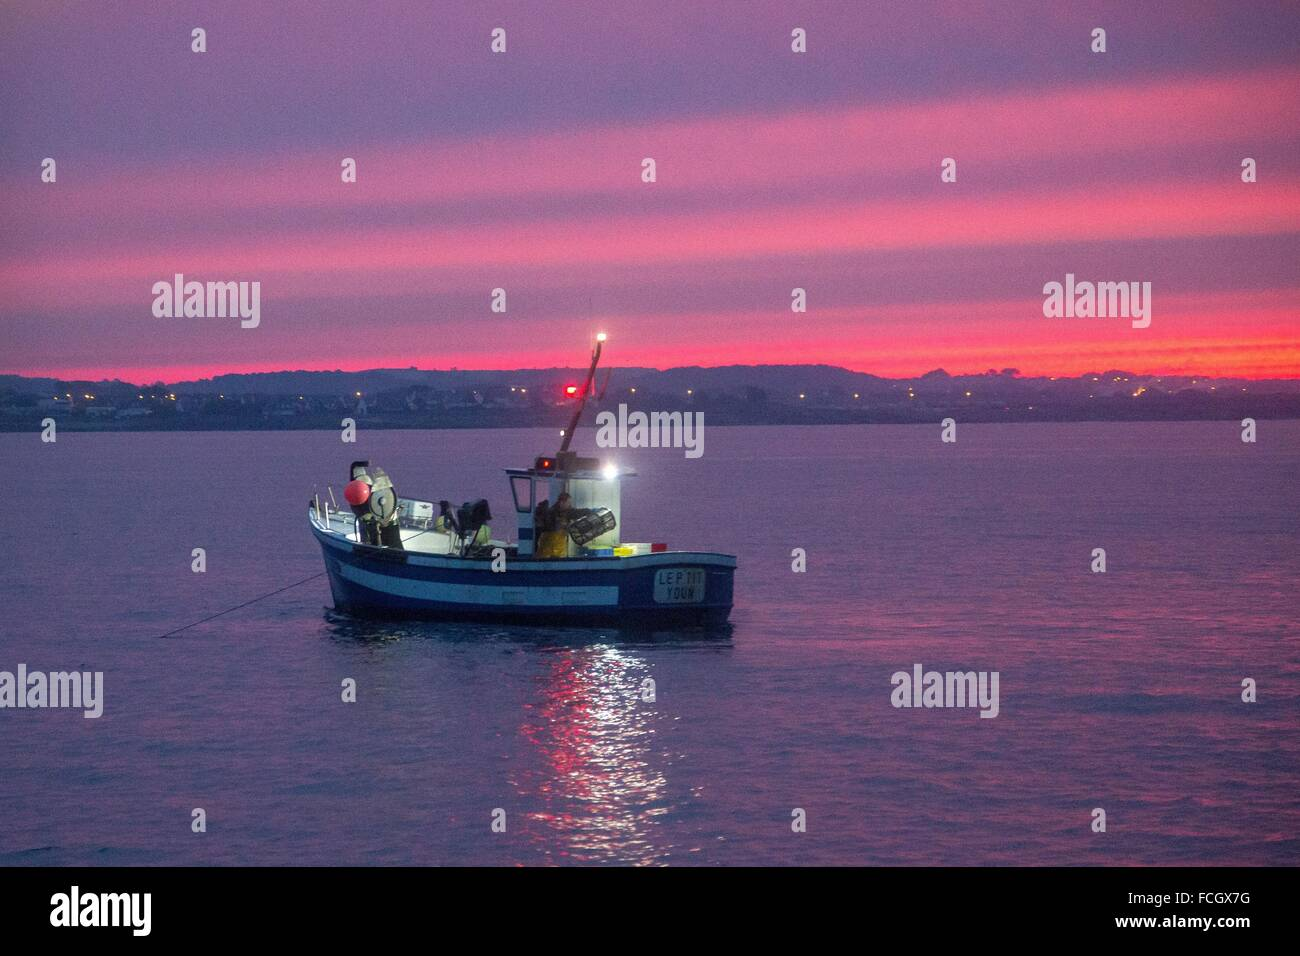 SHRIMP FISHER, FISHING AT SEA, SHRIMP TRAWLER AT DAWN OFF THE COAST OF LORIENT (56), BRITTANY, FRANCE Stock Photo